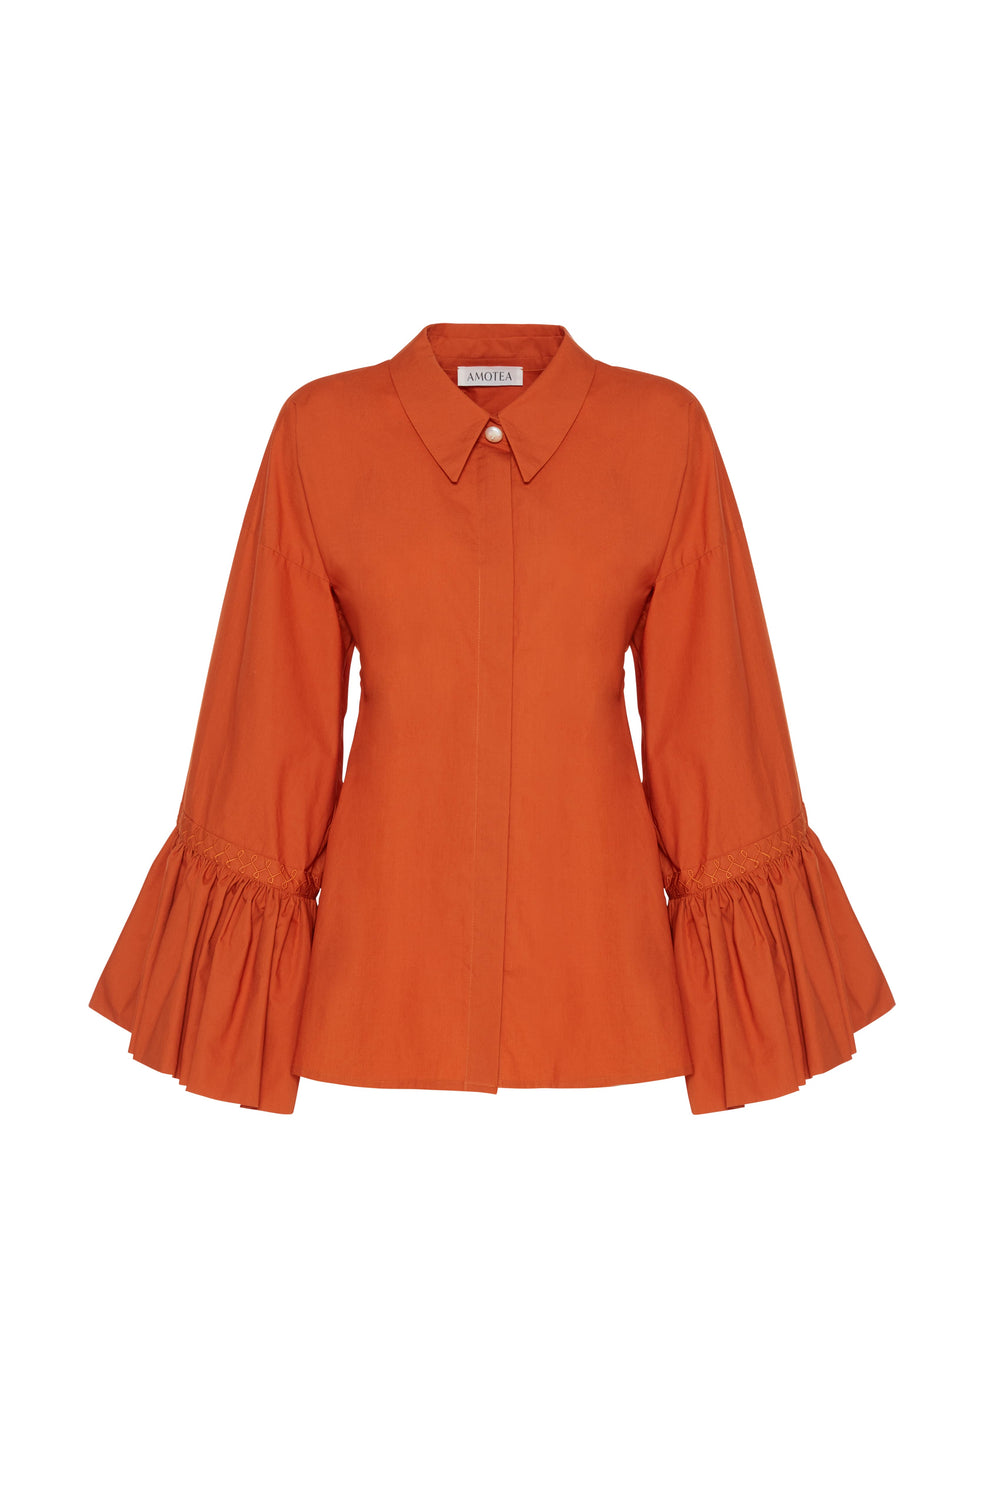 CLAUDIA SHIRT IN ORANGE POPLIN